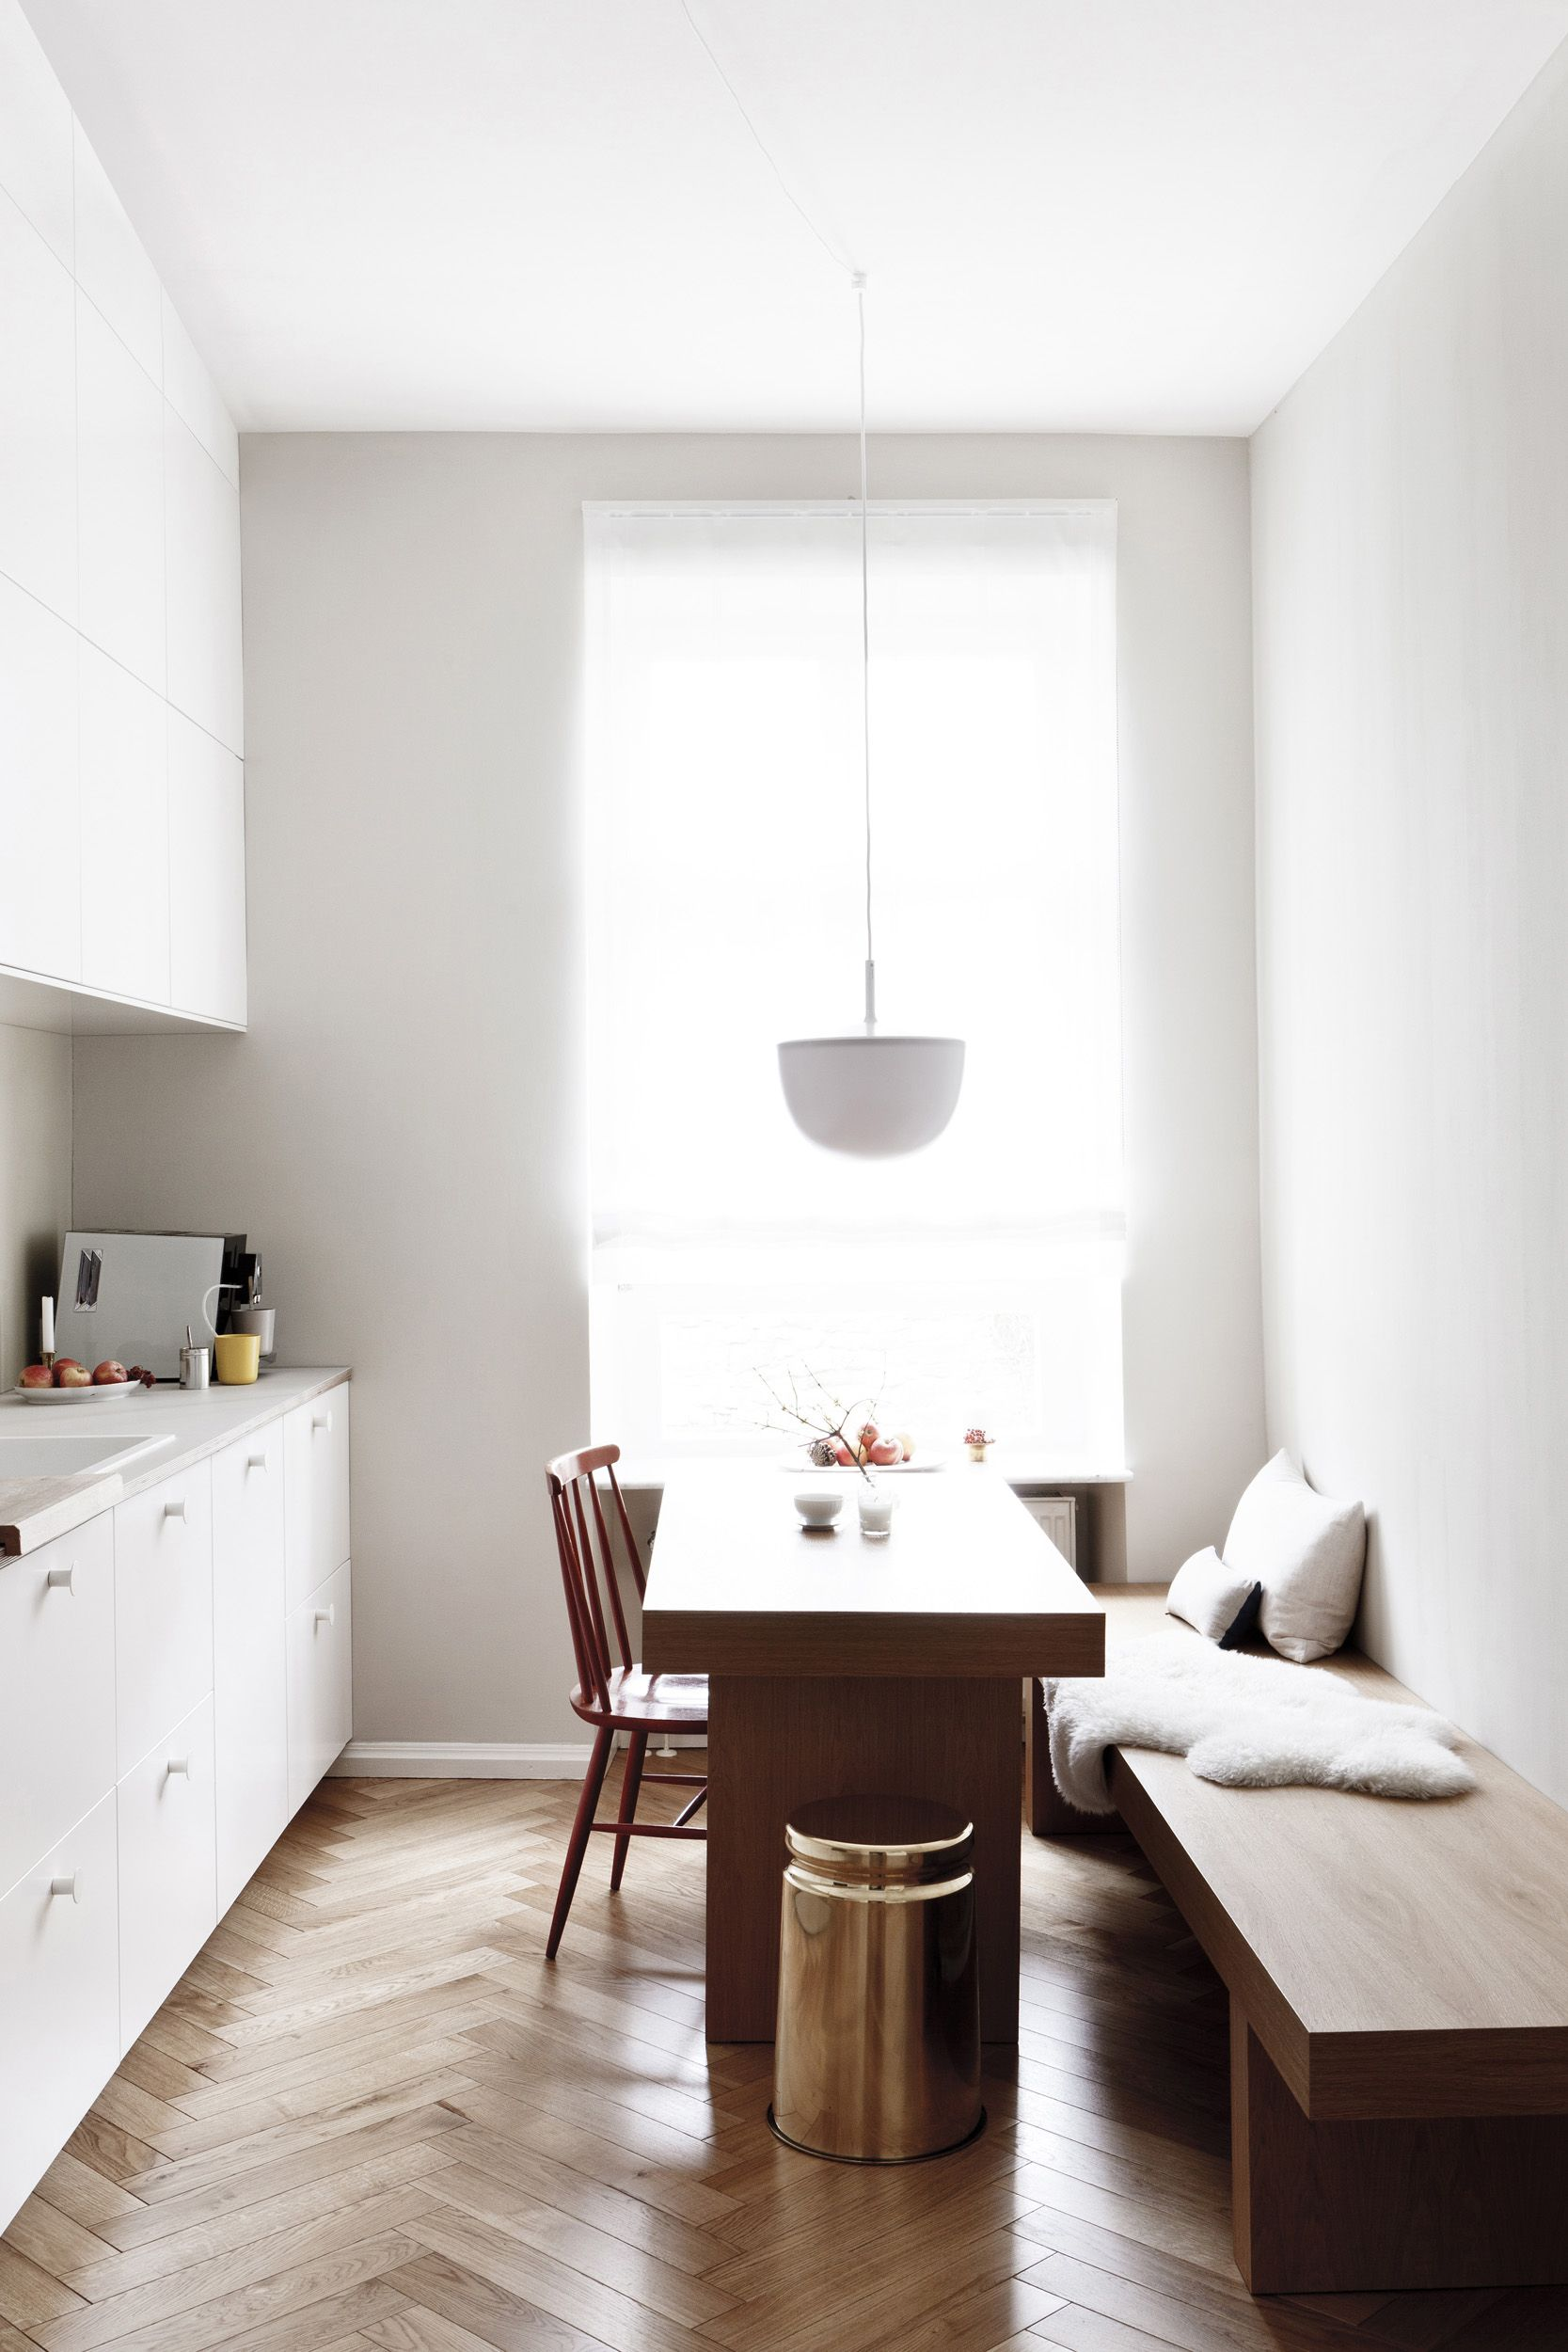 Appartement Interieur Luxe Minimalist Apartment Decor Modern Luxury Ideas For The Home